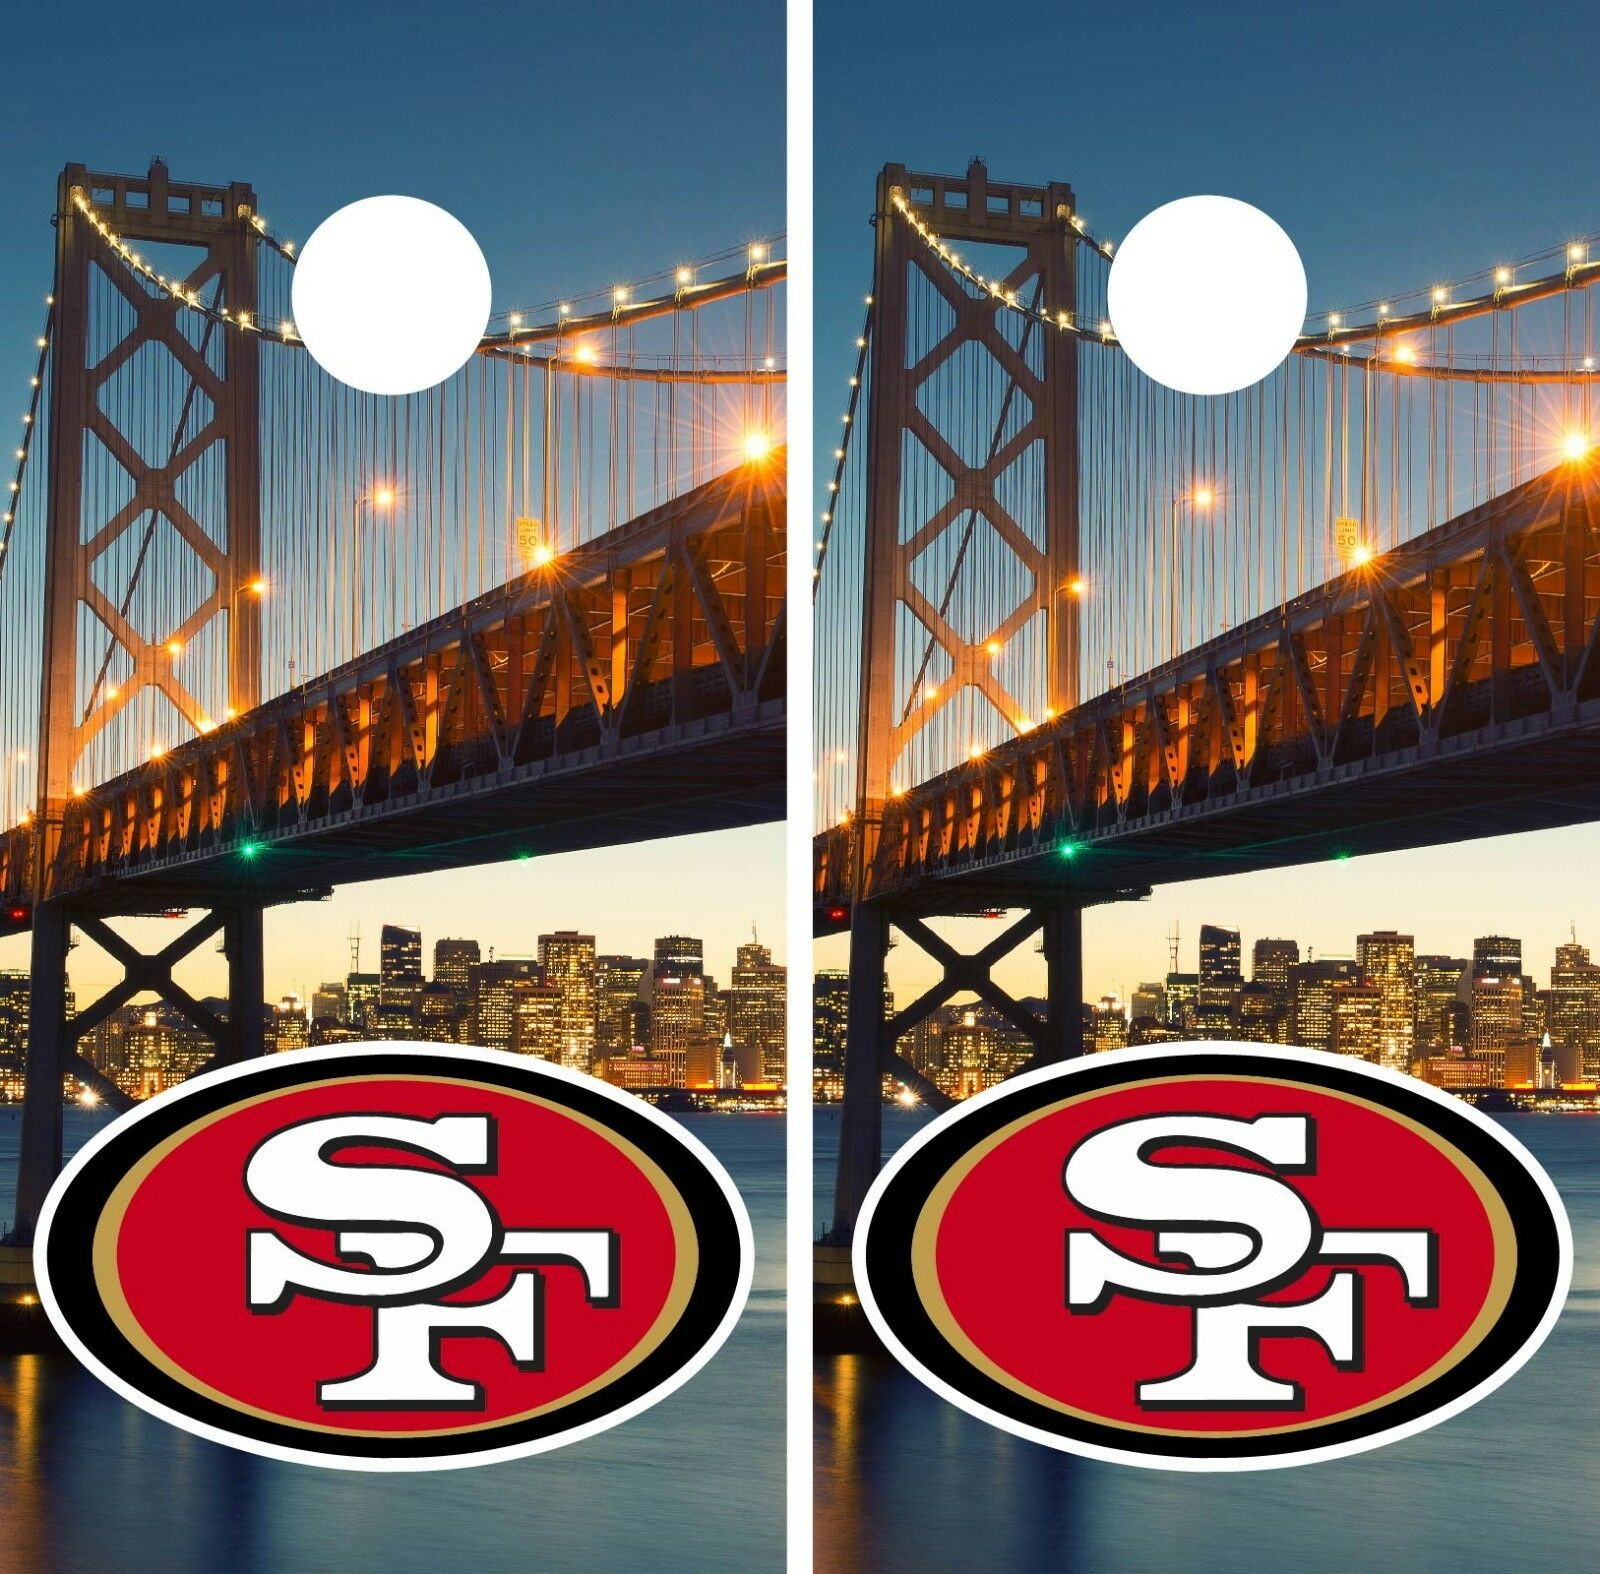 San Francisco 49ERS  Cornhole Wrap NFL Bridge Game Skin Board Set Vinyl Art CO112  with cheap price to get top brand